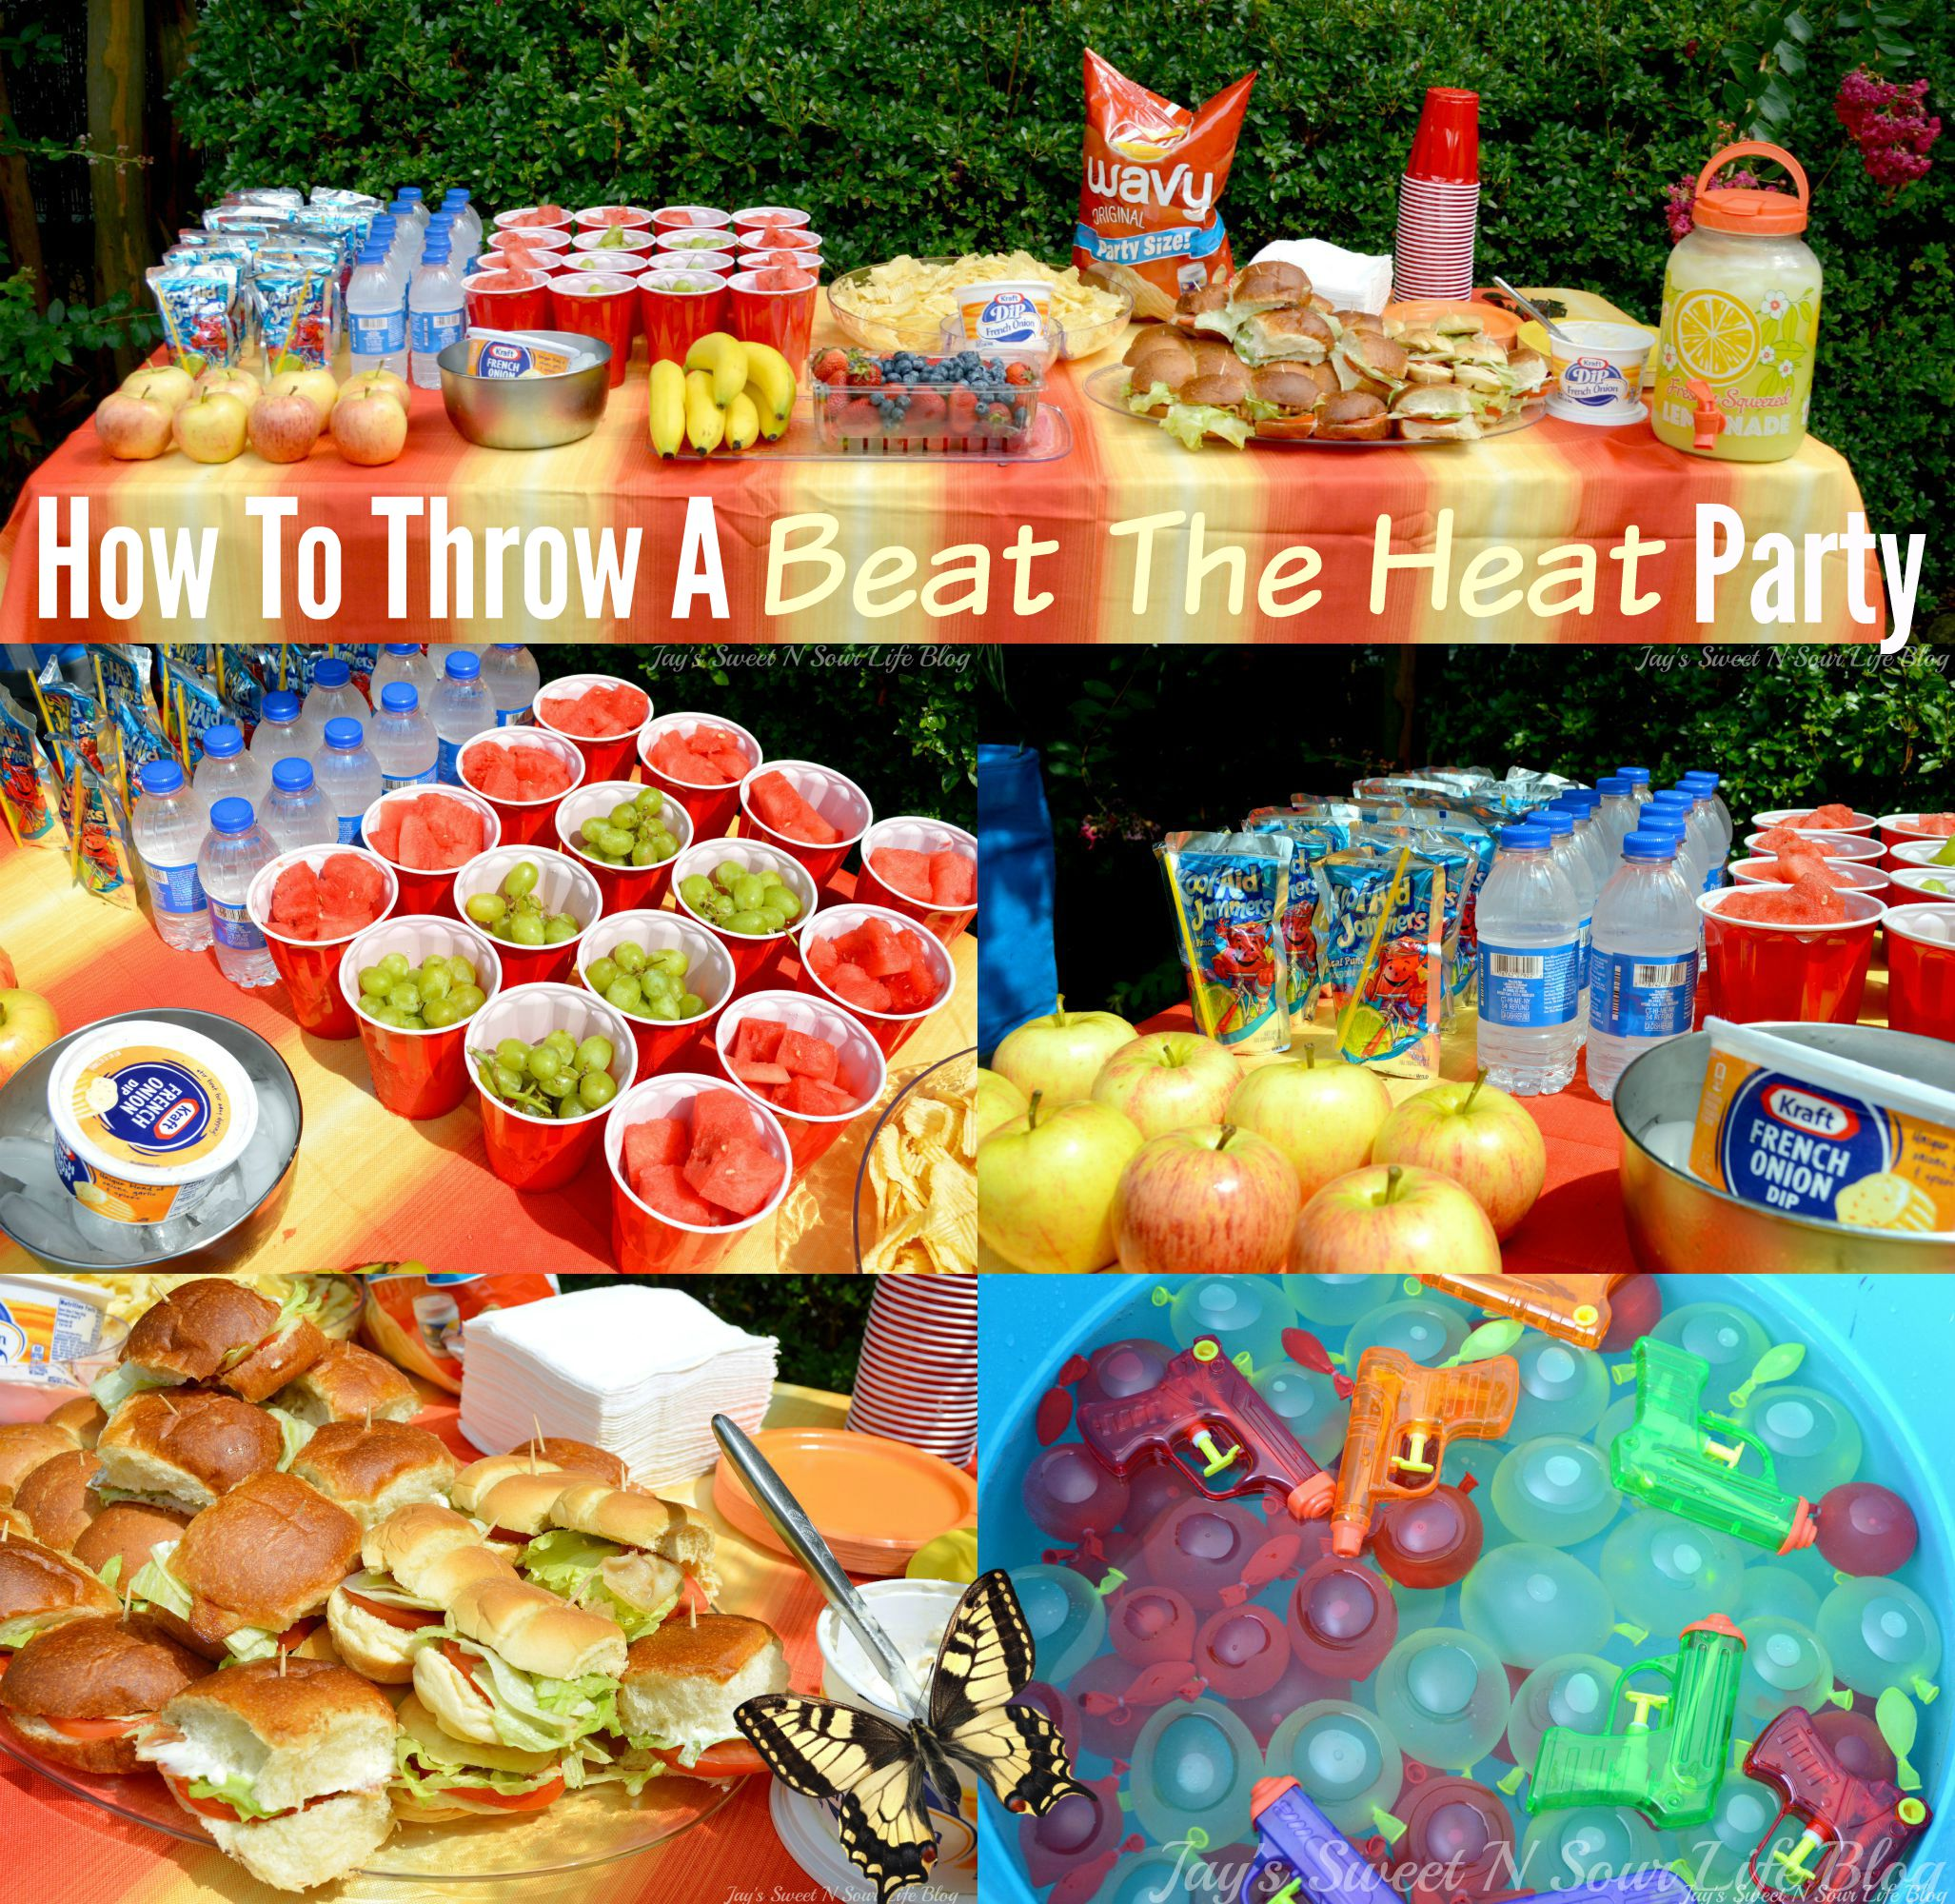 How To Throw A 'Beat The Heat' Party